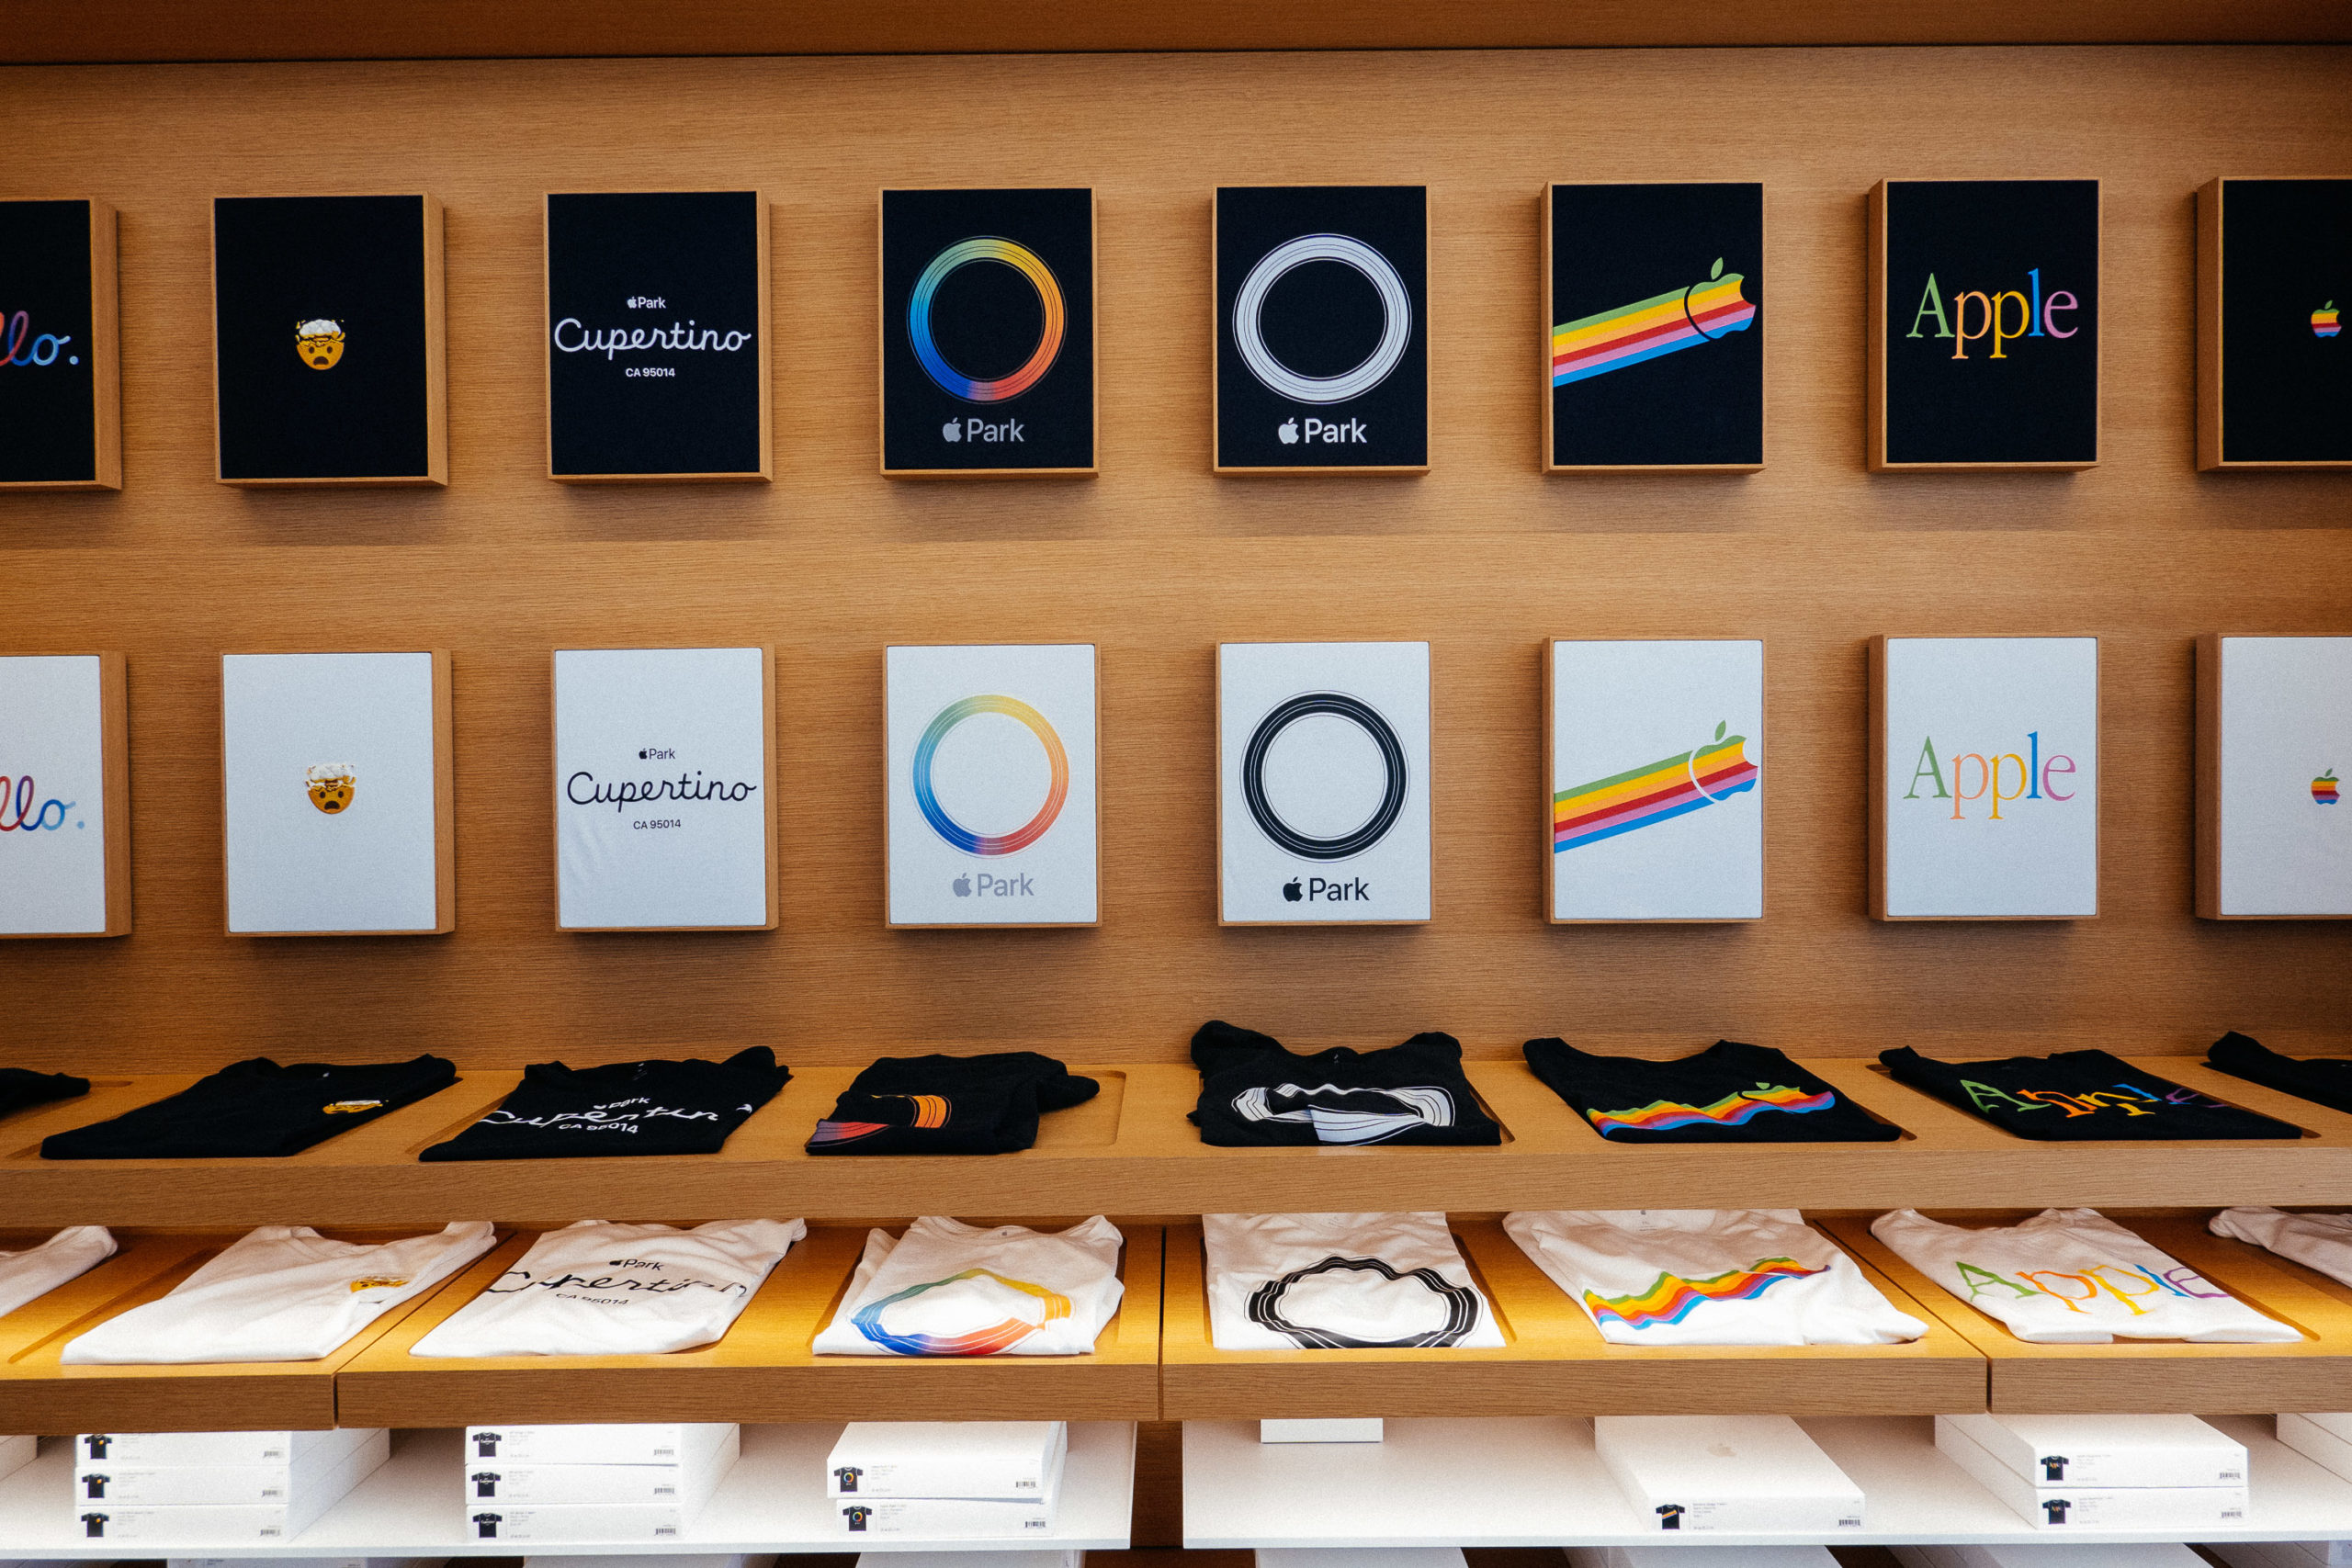 T-shirts with Apple branding displayed in a retail setting